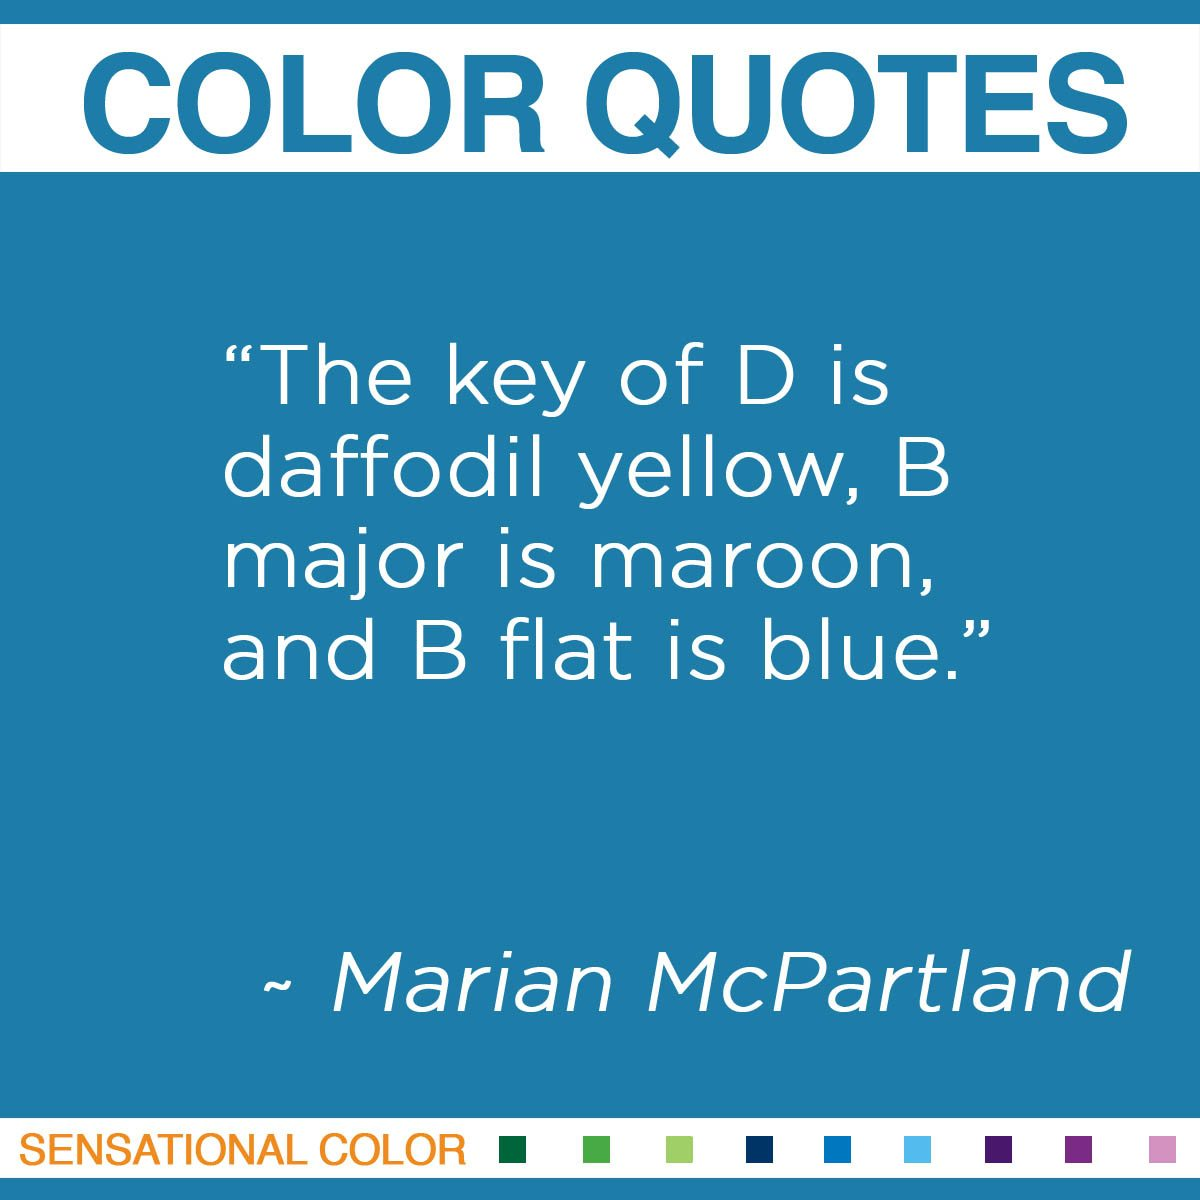 """The key of D is daffodil yellow, B major is maroon, and B flat is blue."" - Marian McPartland"